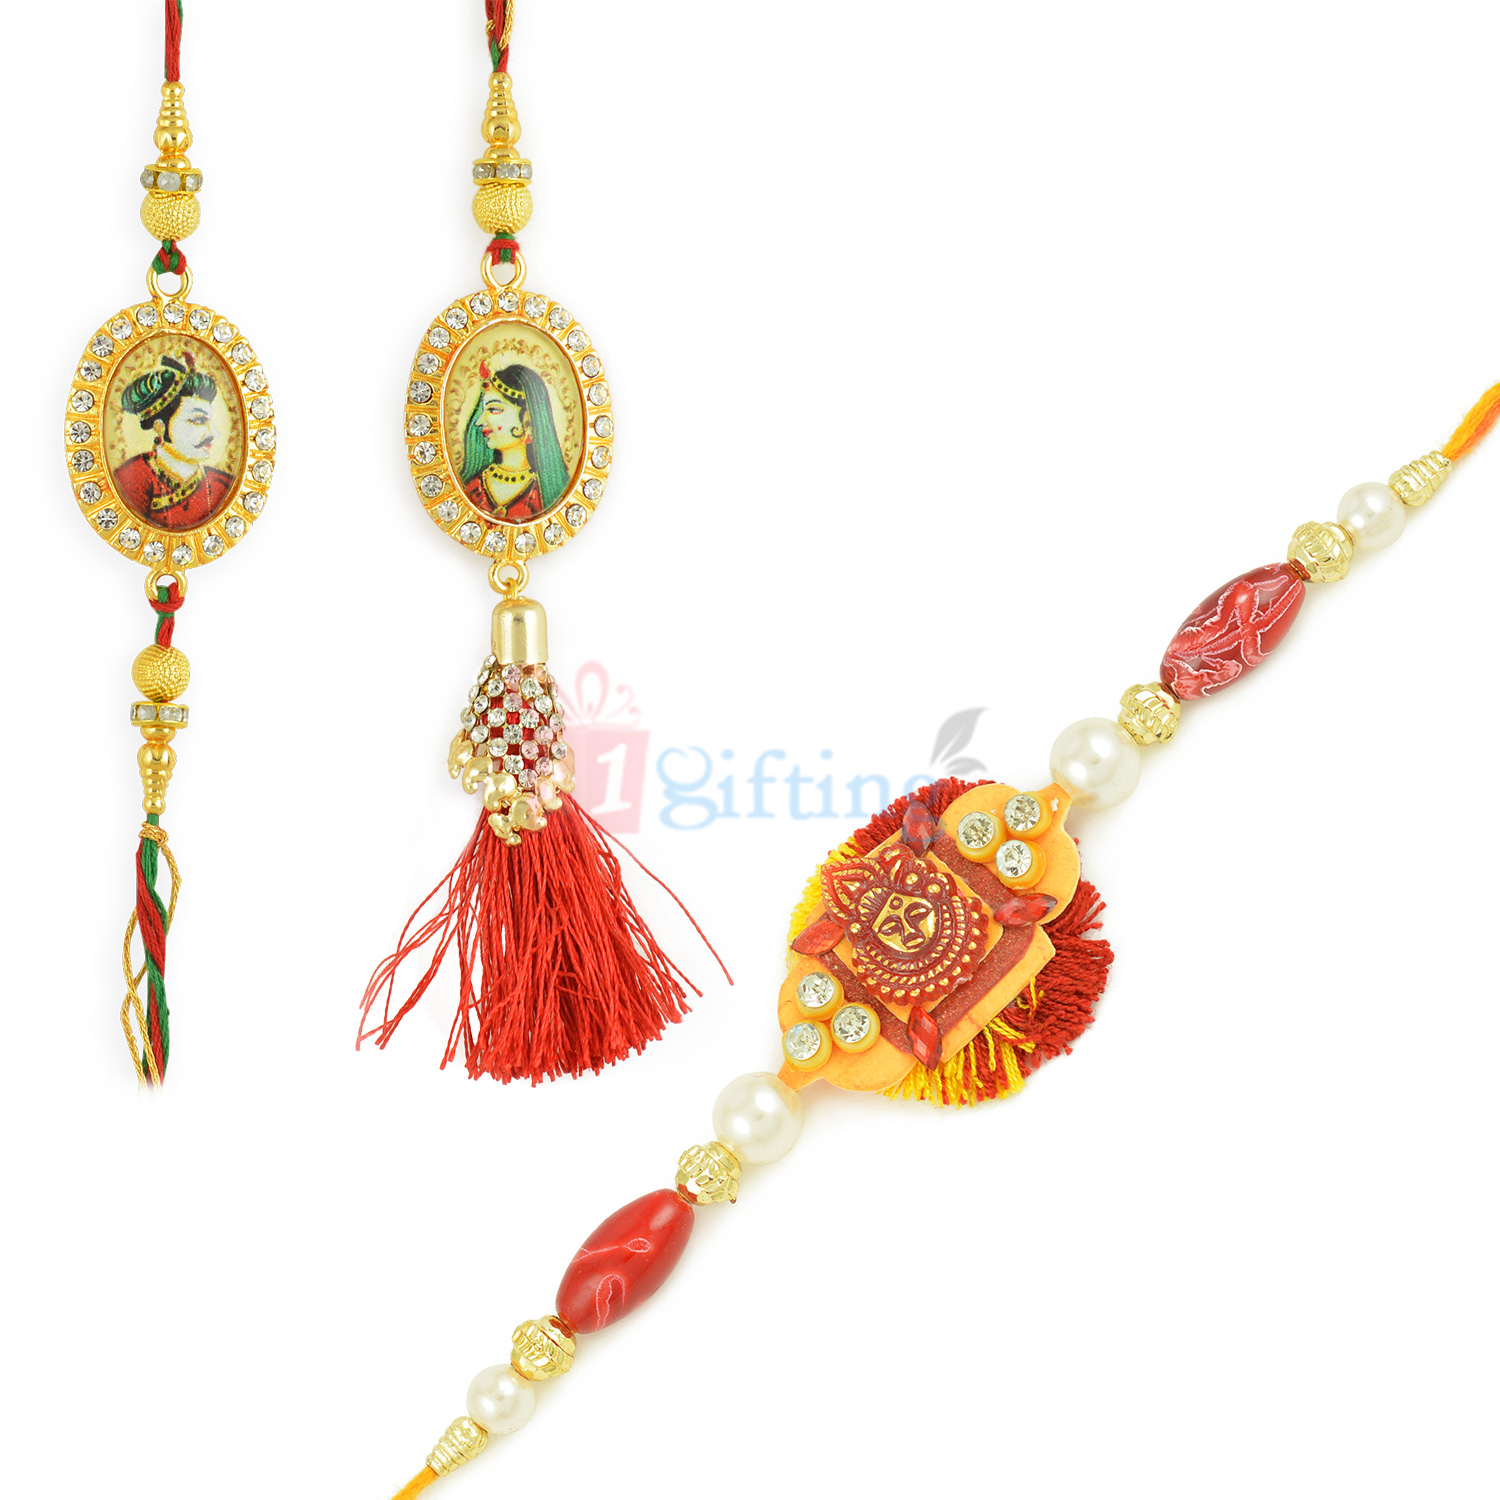 Majestic His Highness and Her Highness Rakhi Set of 3